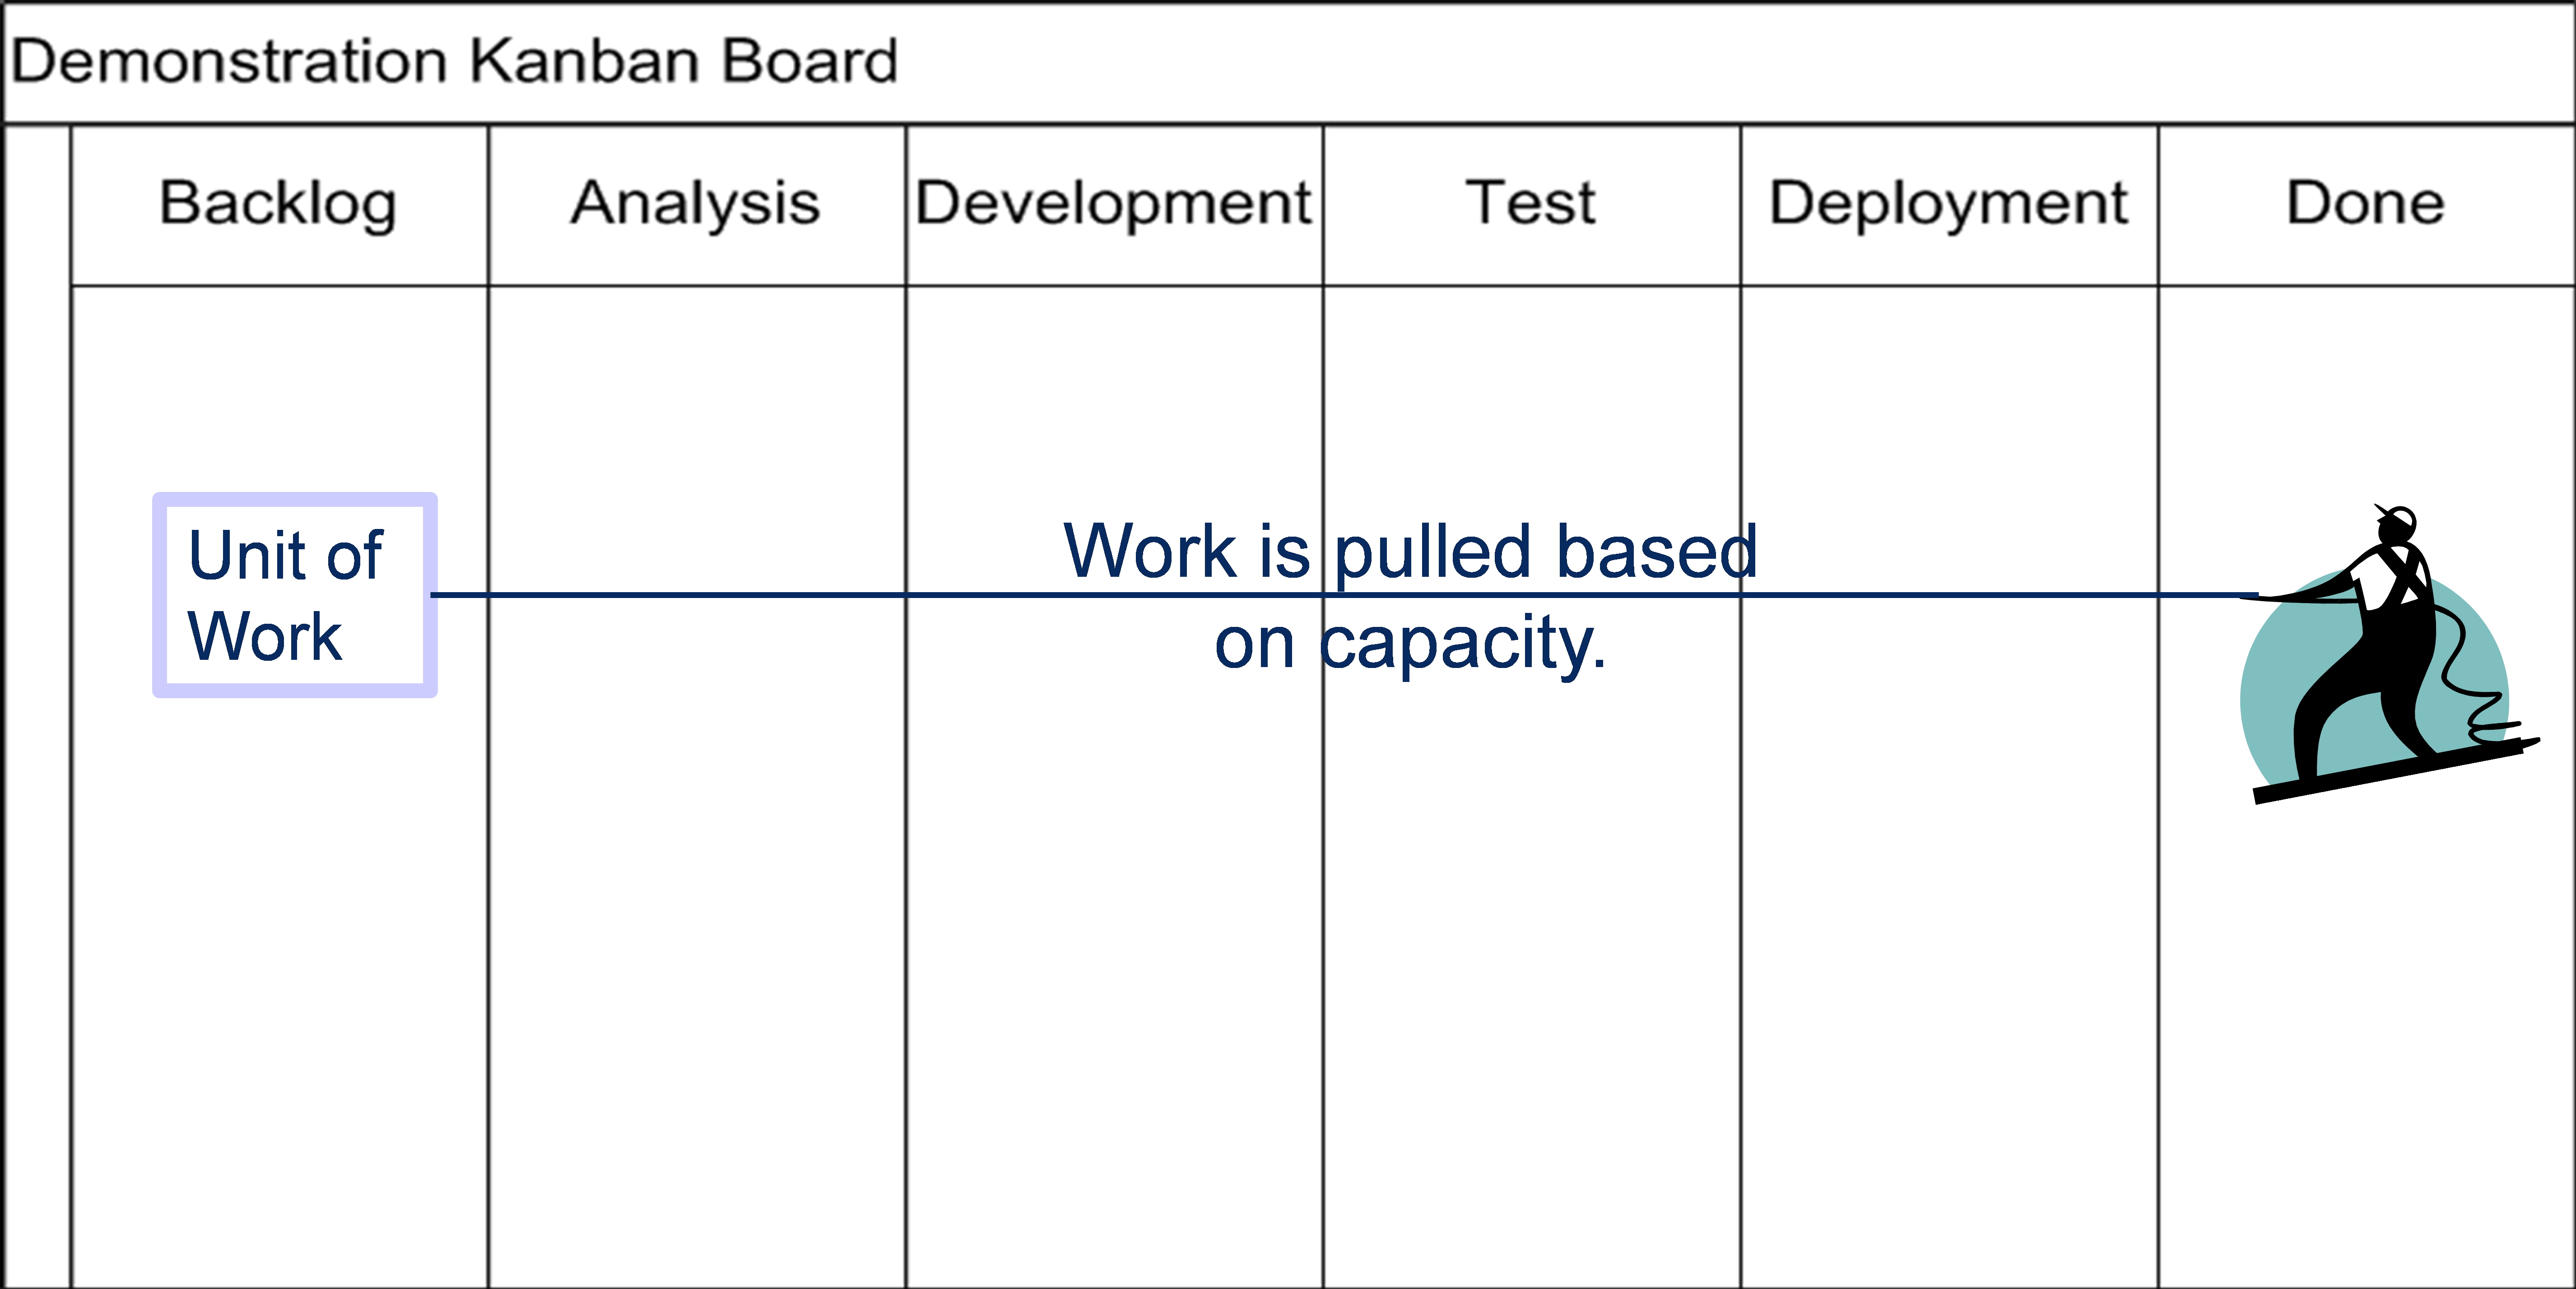 Kanban helps to visualize the flow of work.